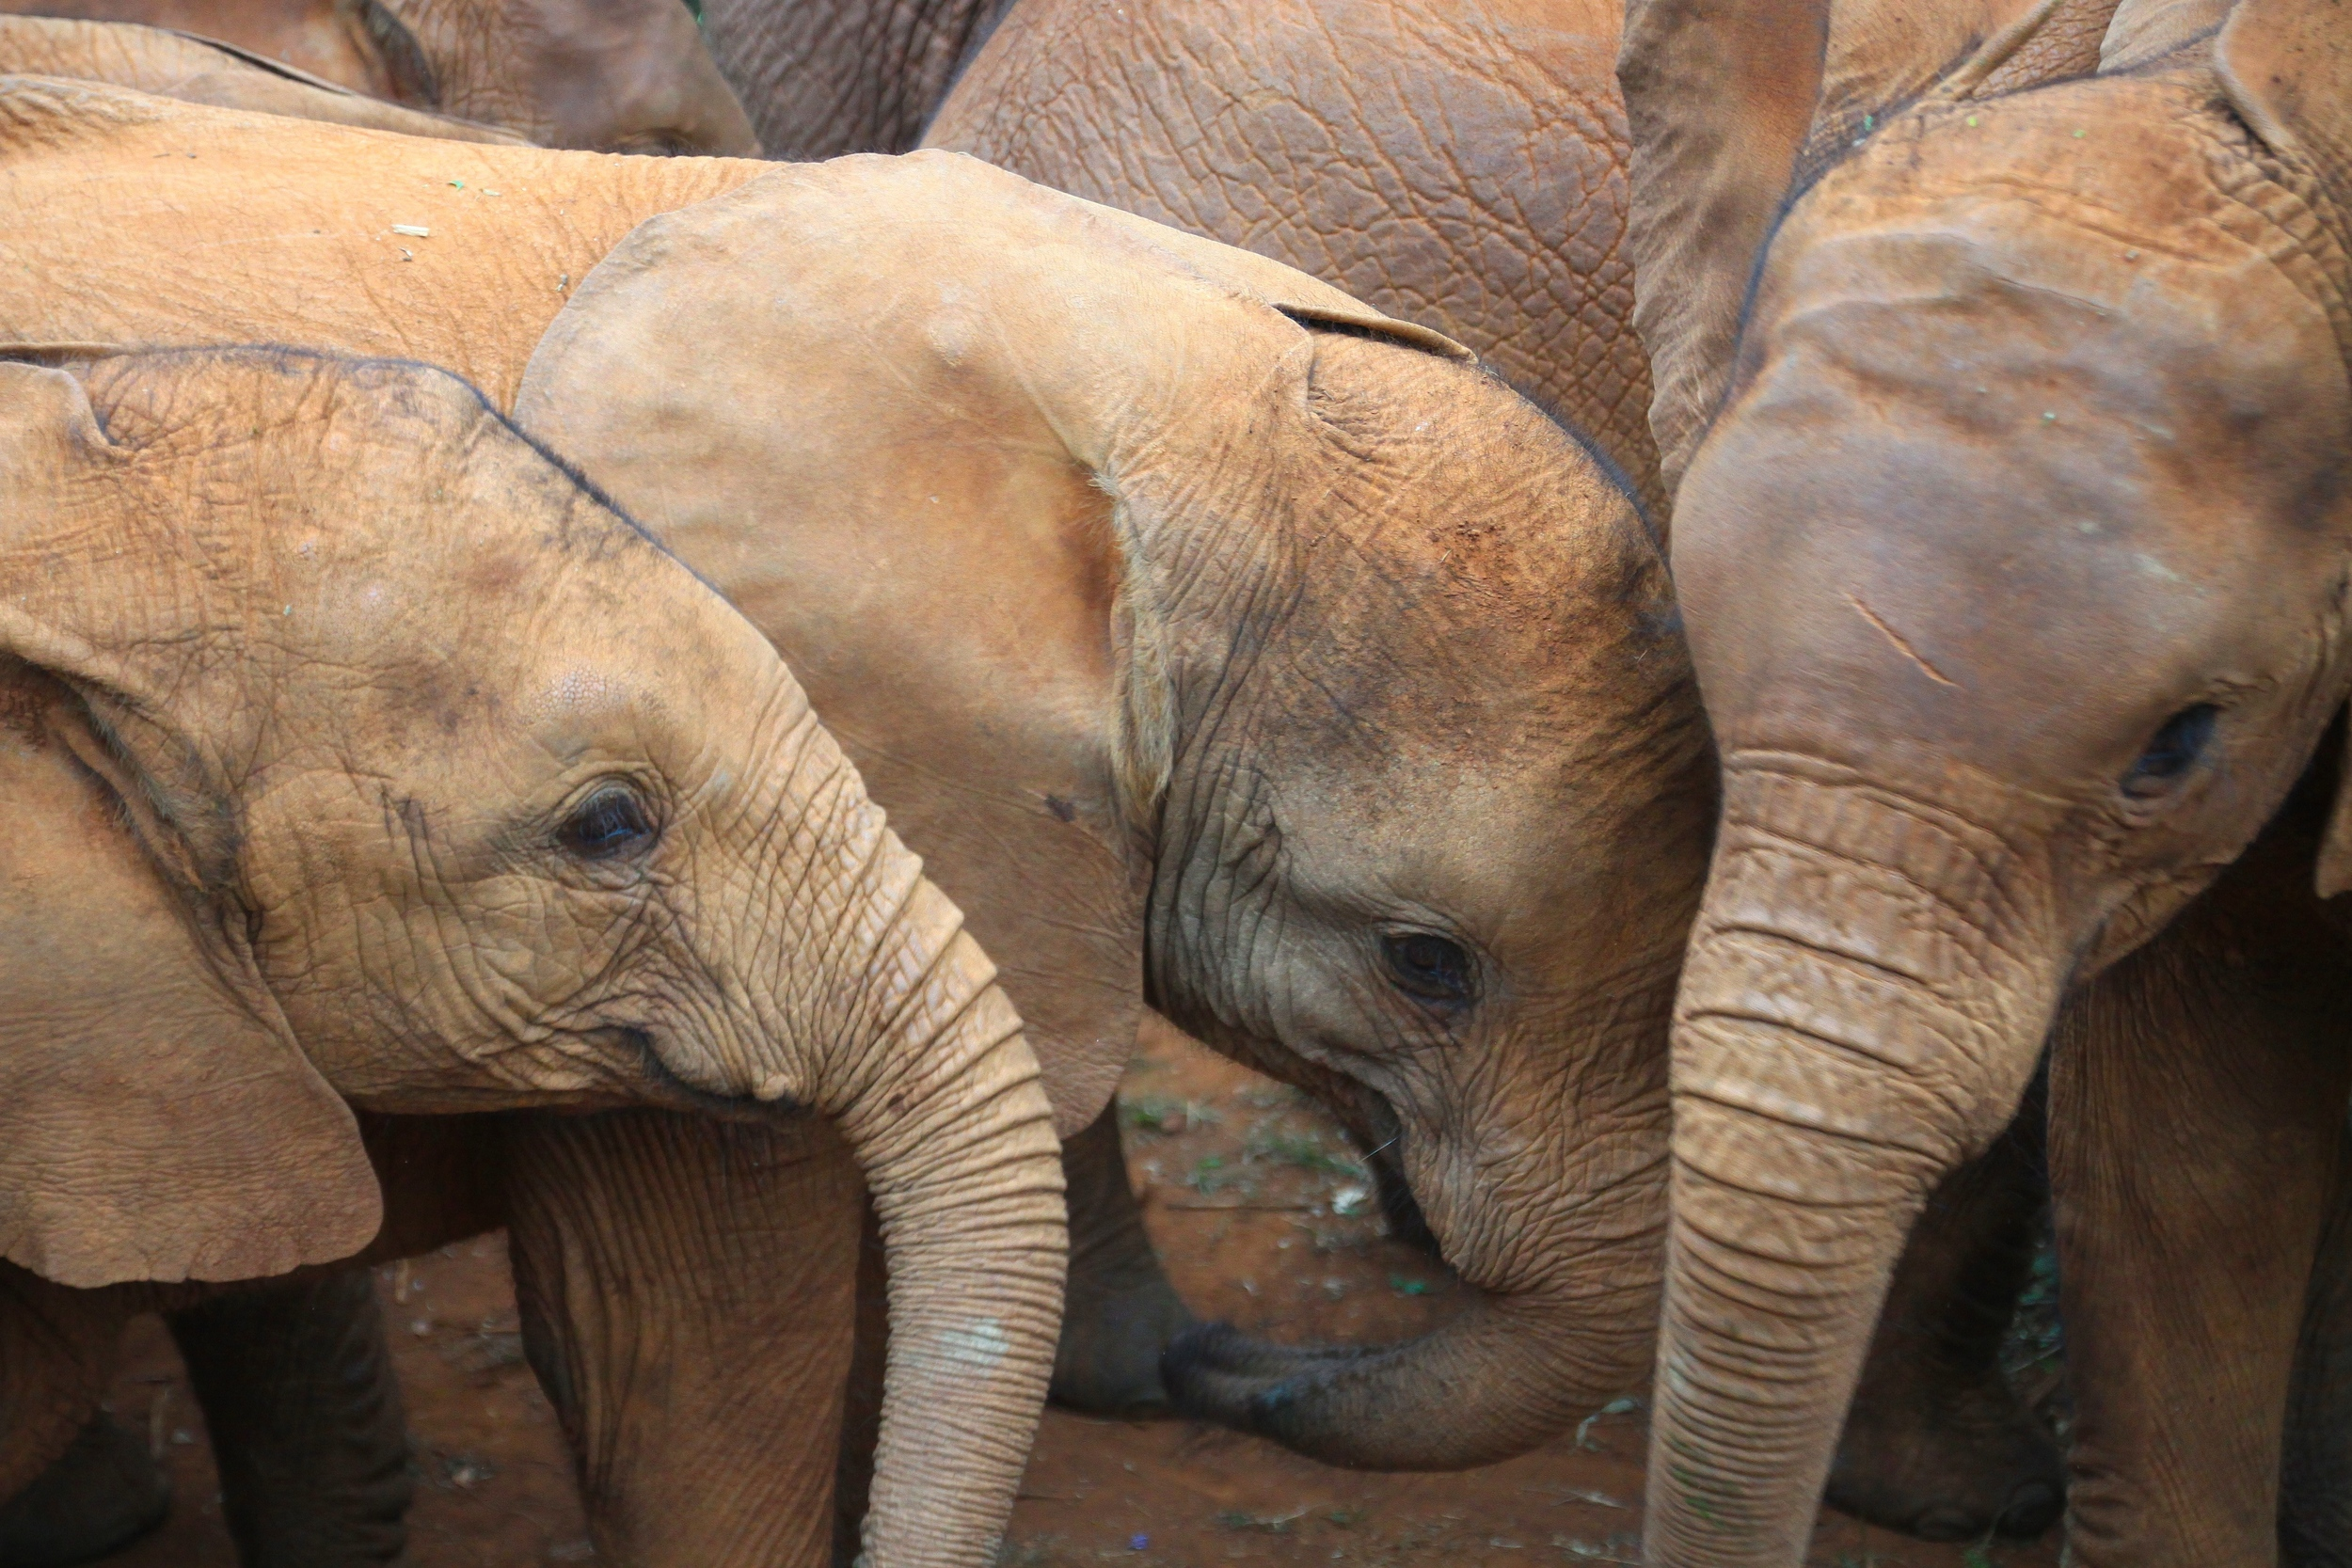 The parents of these orphaned elephants were killed by poachers. They're now being looked after at the David Sheldrick Wildlife Trust in Nairobi